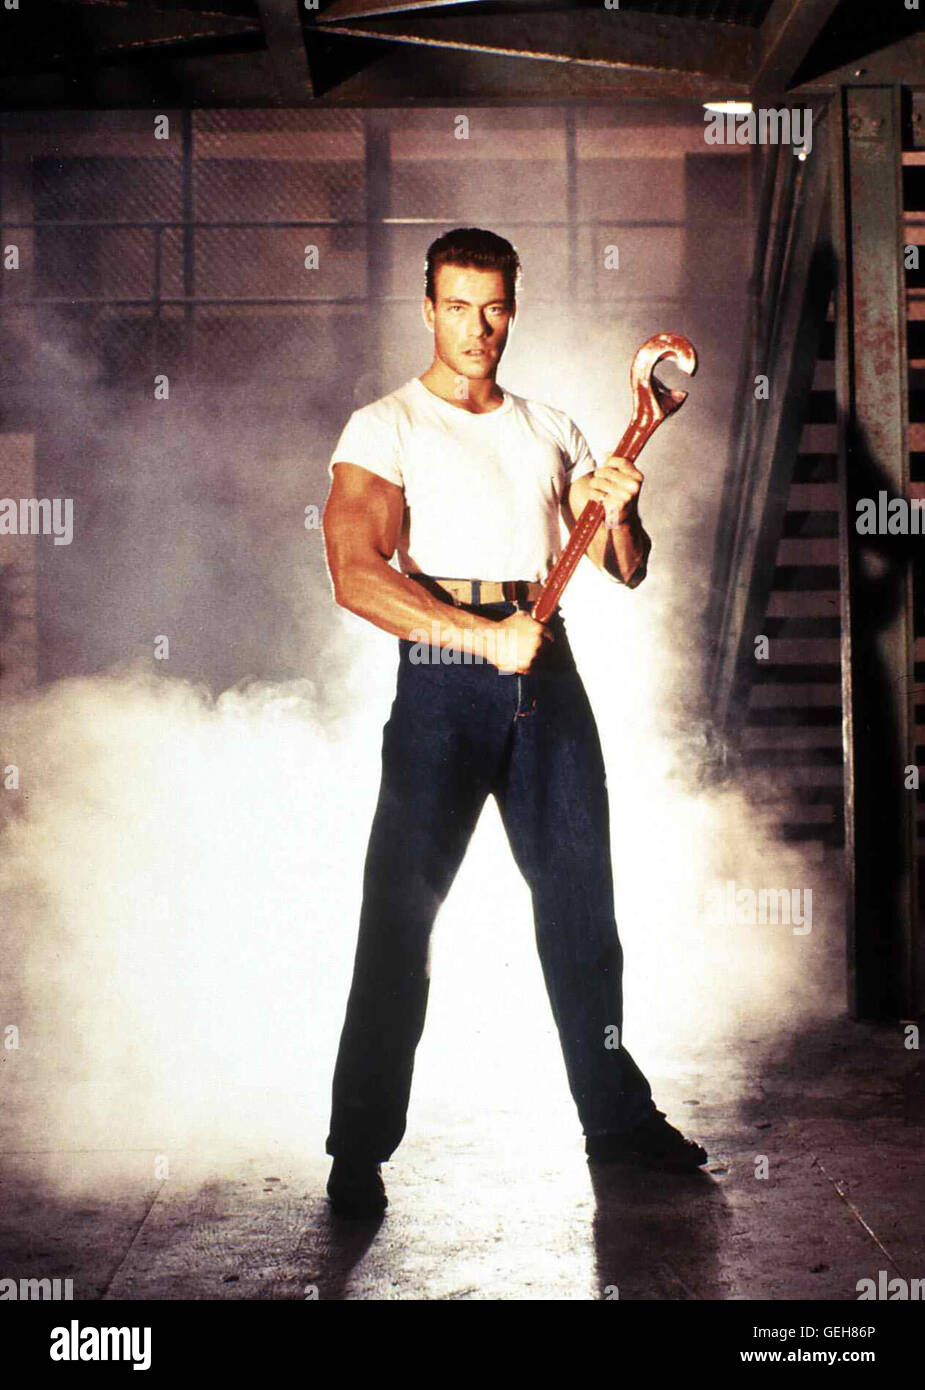 Jean-Claude Van Damme *** Local Caption *** 1989, Death Warrant, Mit Staehlerner Faust - Stock Image